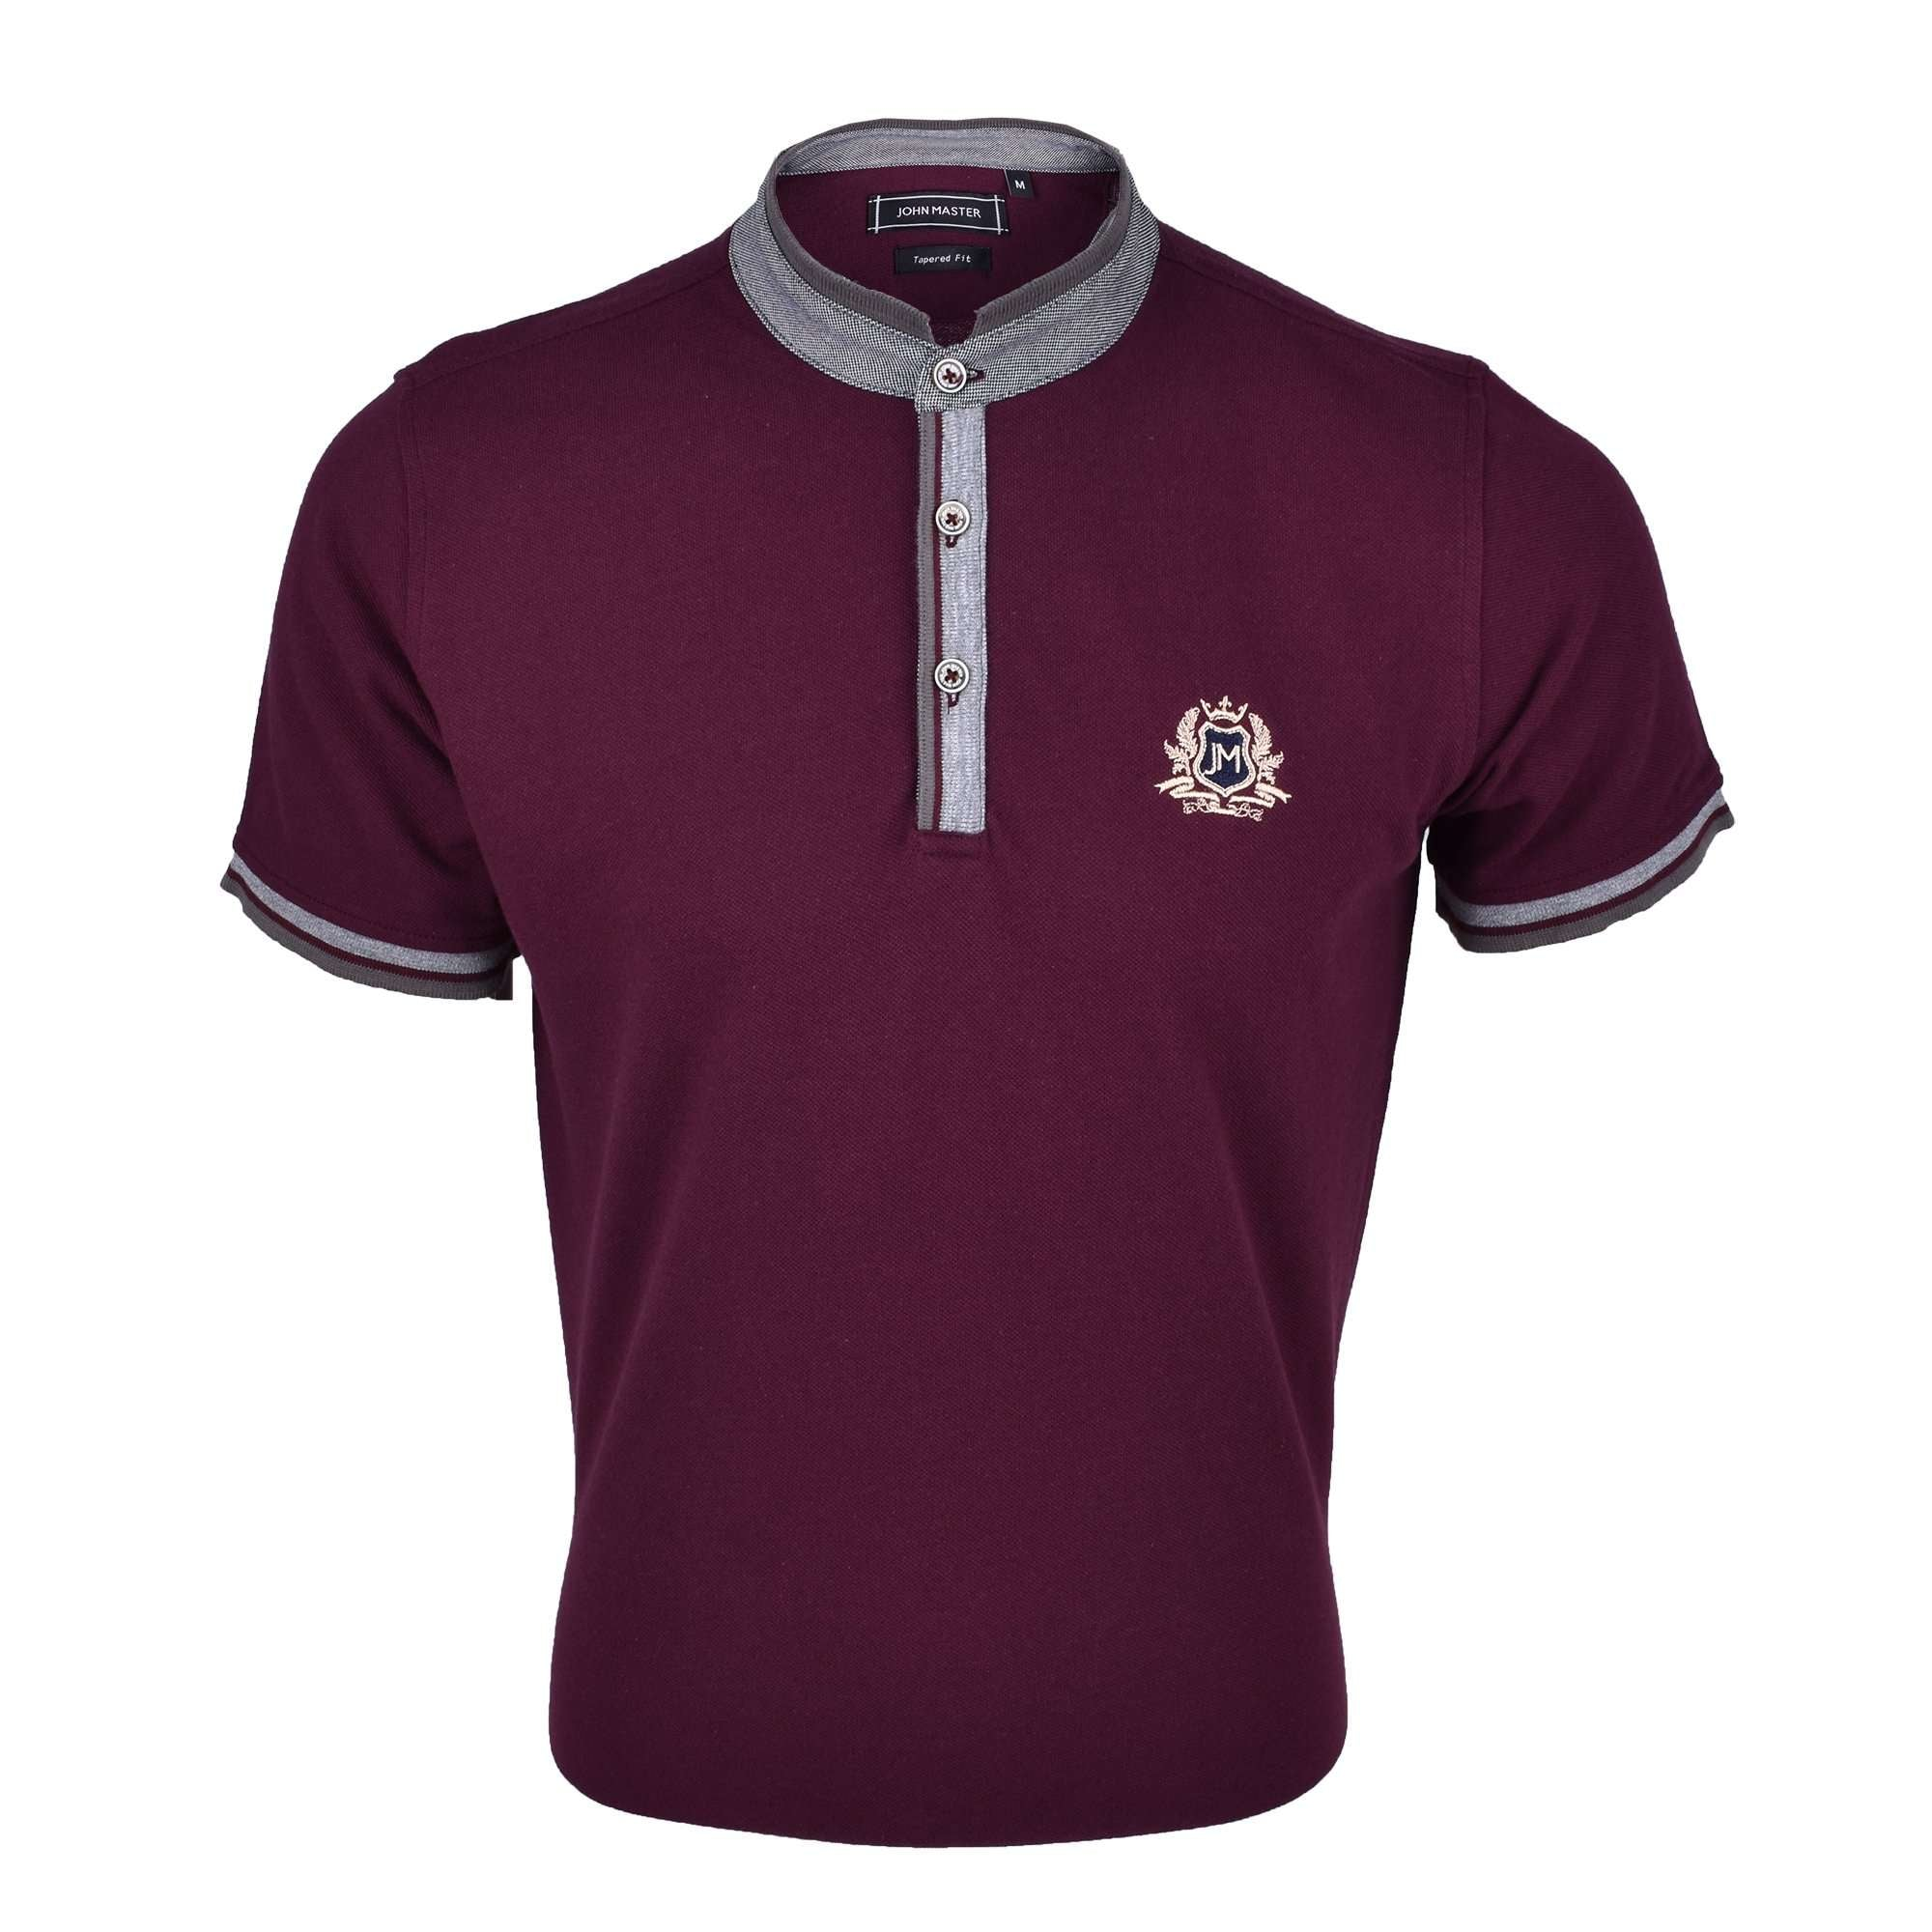 John Master Men Casual Tapered fit Polo Tee Maroon 8088001-R6 : Buy John Master online at CMG.MY